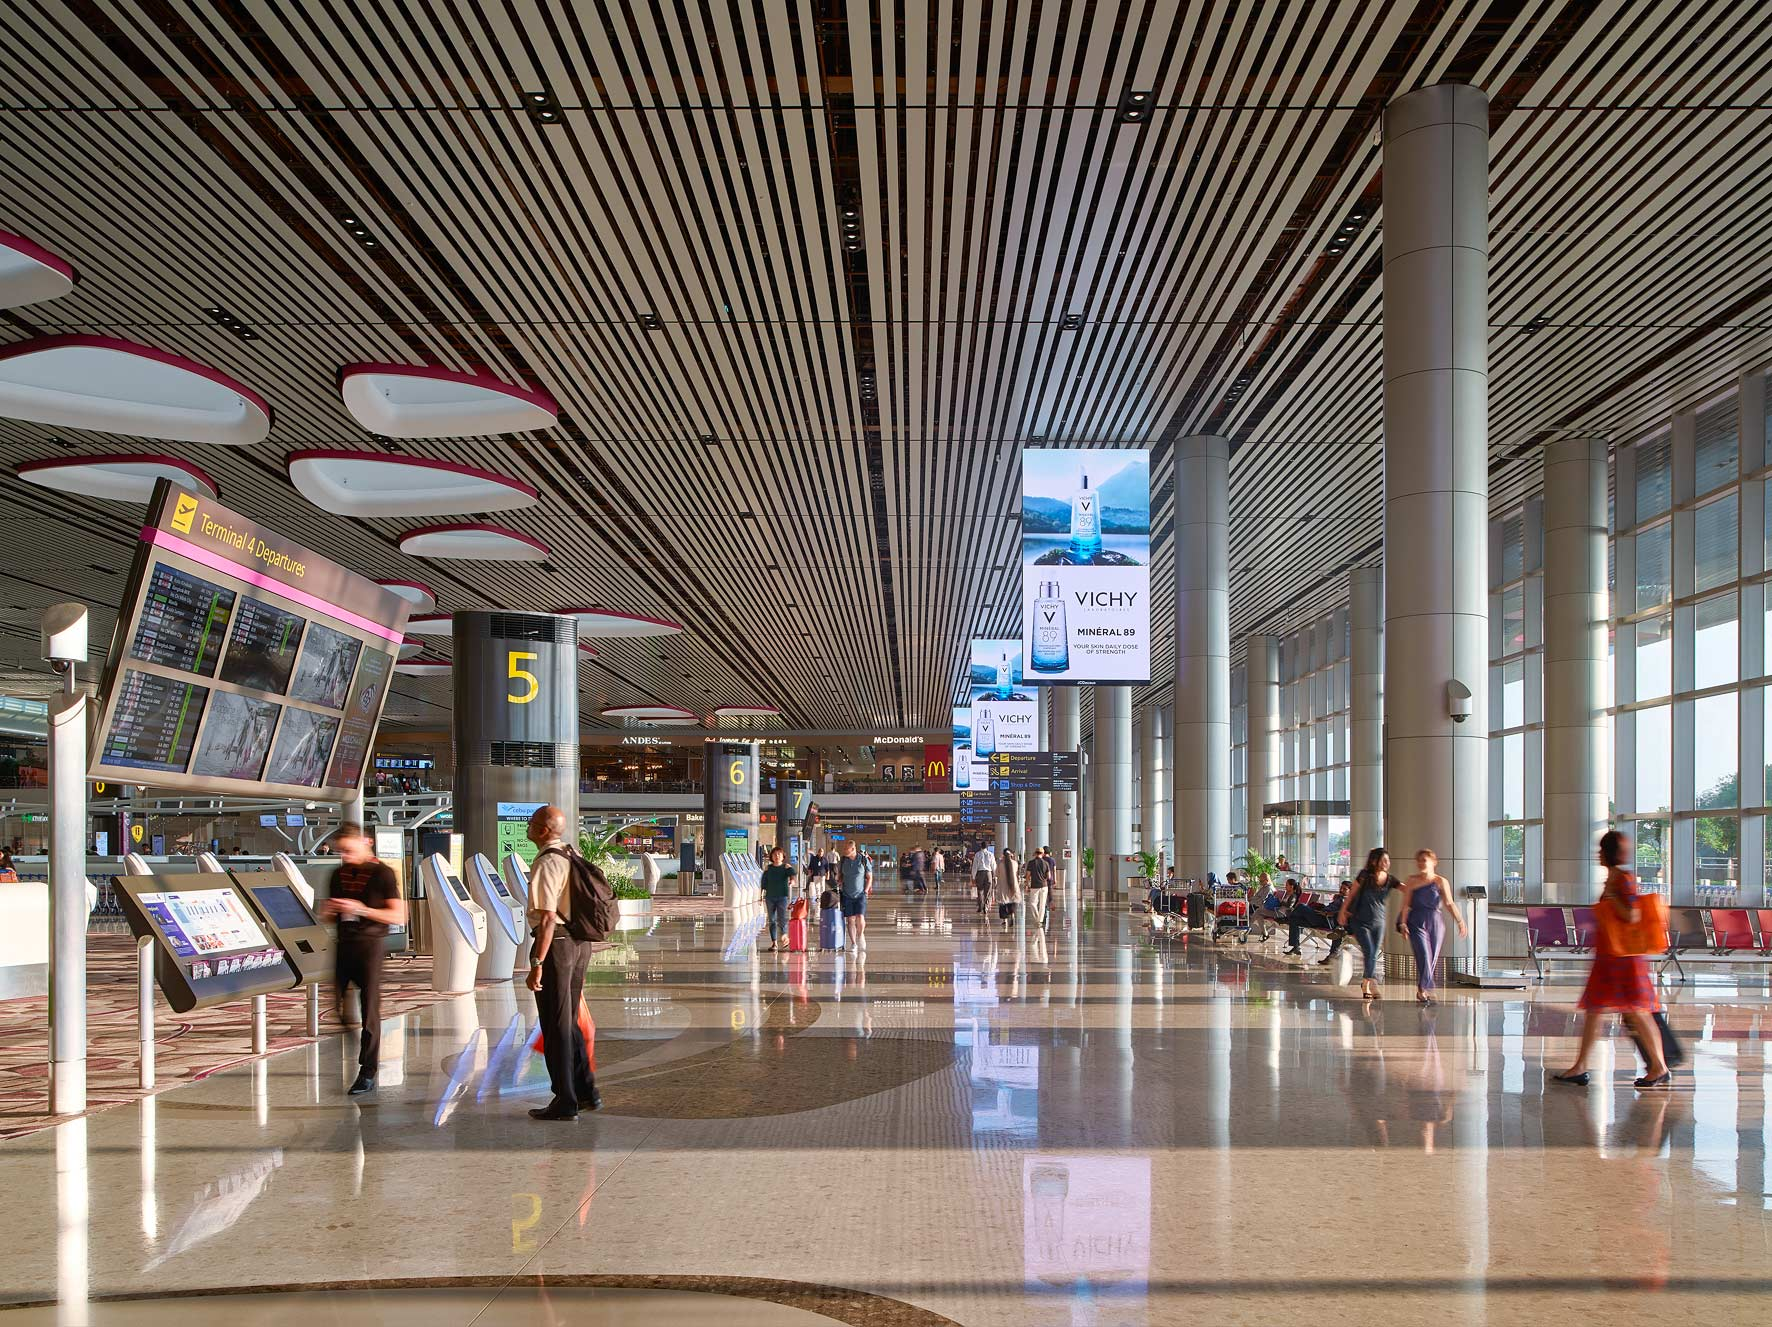 Owen Raggett. Architectural photographer, Singapore. Changi Airport Terminal 4, Singapore.